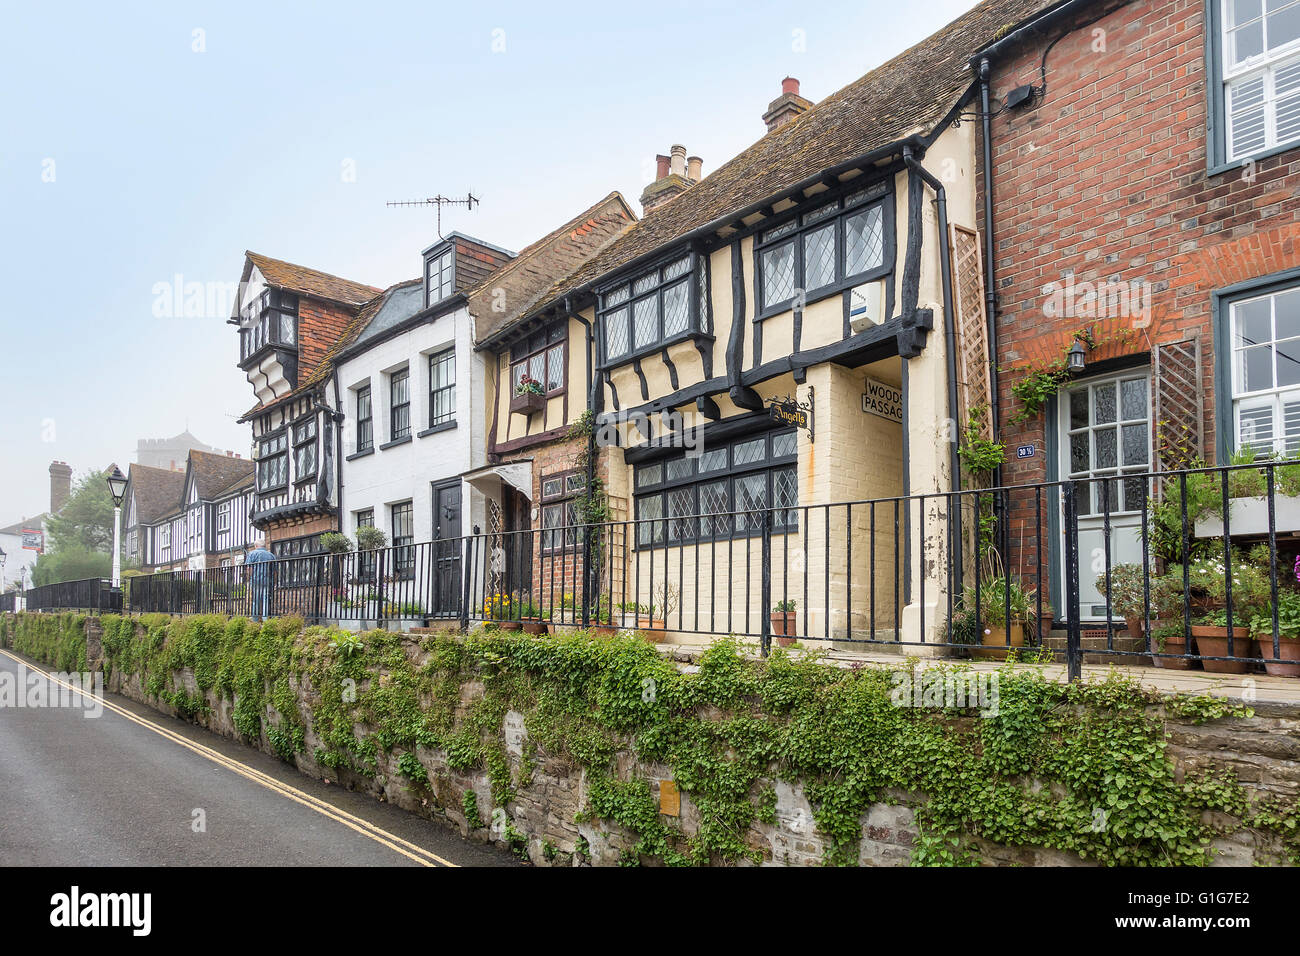 All Saints Street Hastings Old Town Hastings East Sussex - Stock Image